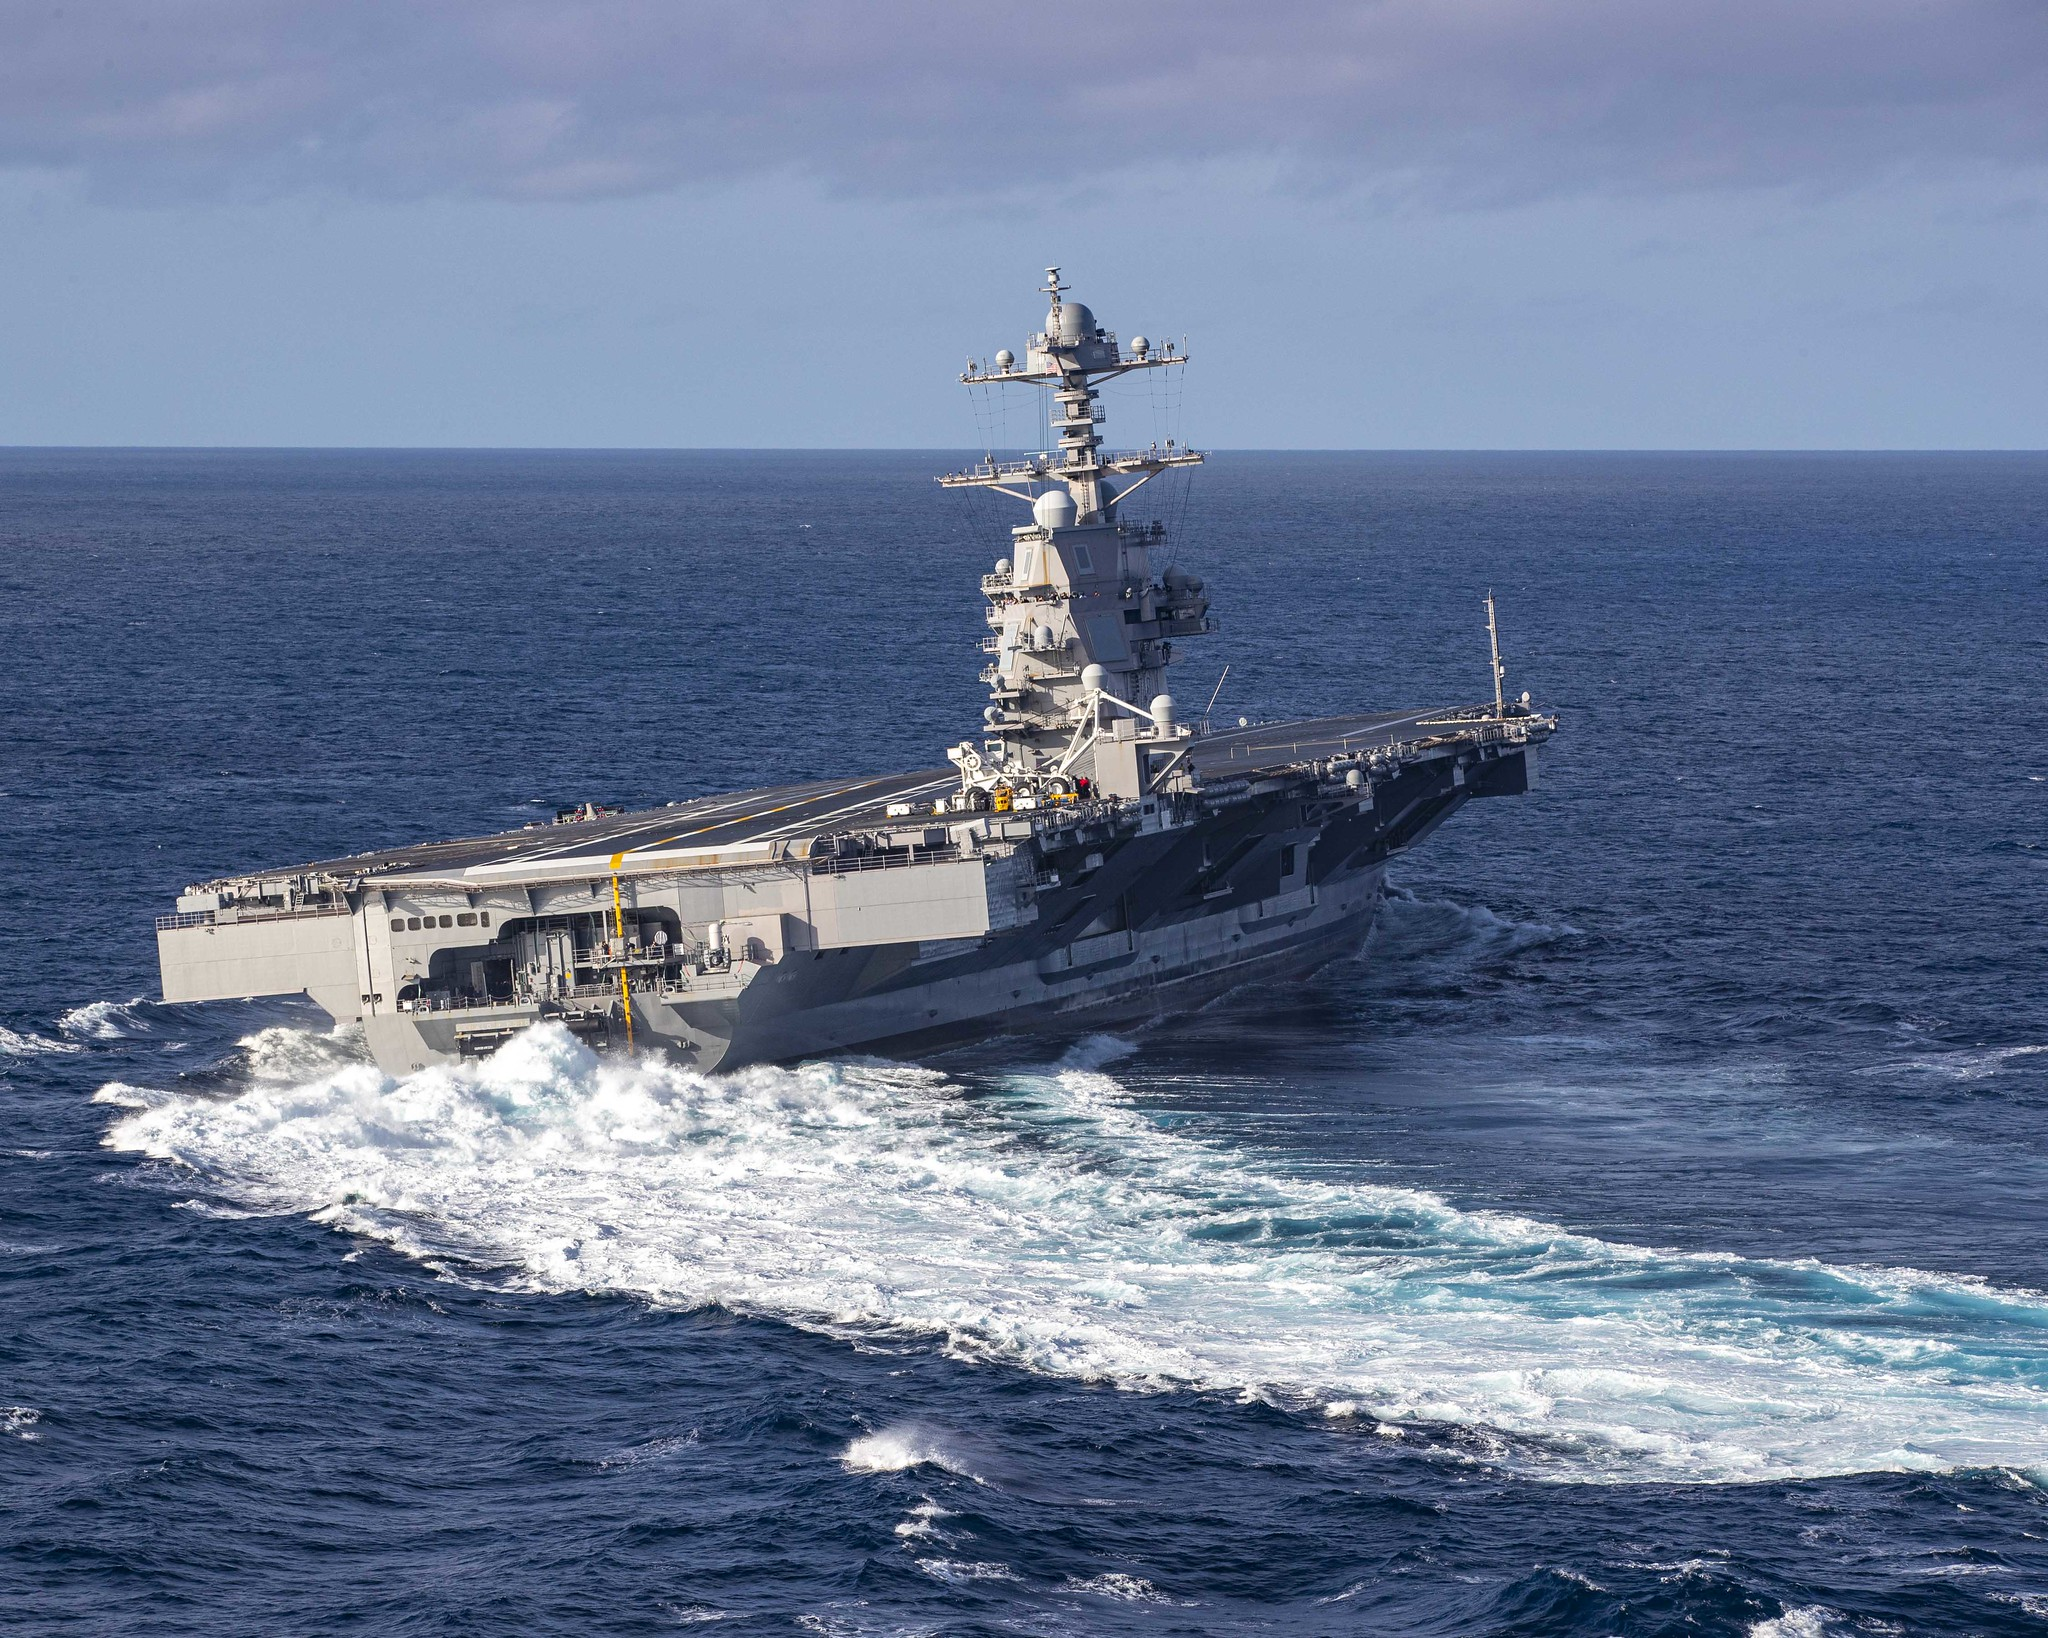 The aircraft carrier USS Gerald R. Ford (CVN 78) conducts high-speed turns in the Atlantic Ocean, Oct. 29, 2019. Gerald R. Ford is at sea conducting sea trials following the in port portion of its 15-month post-shakedown availability. (Mass Communication Specialist 3rd Class Connor Loessin/Navy)